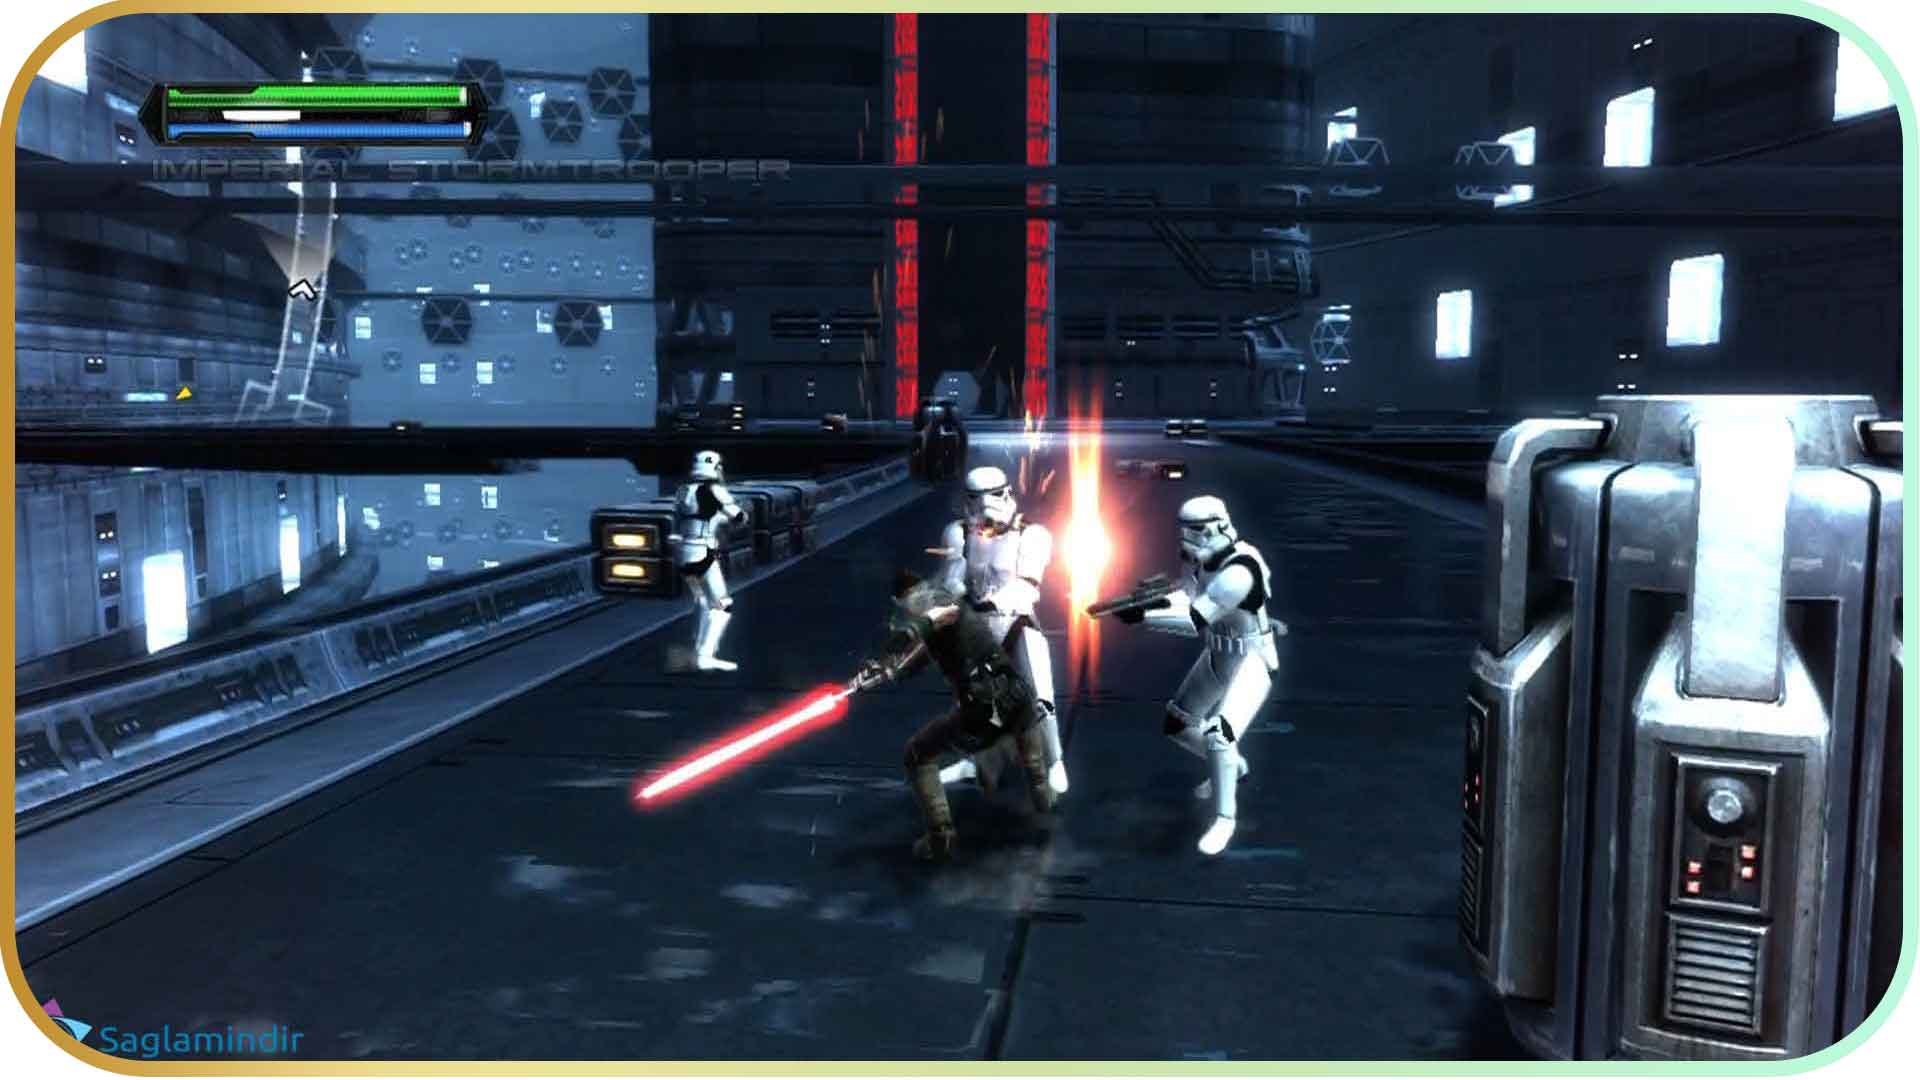 Star Wars The Force Unleashed saglamindir